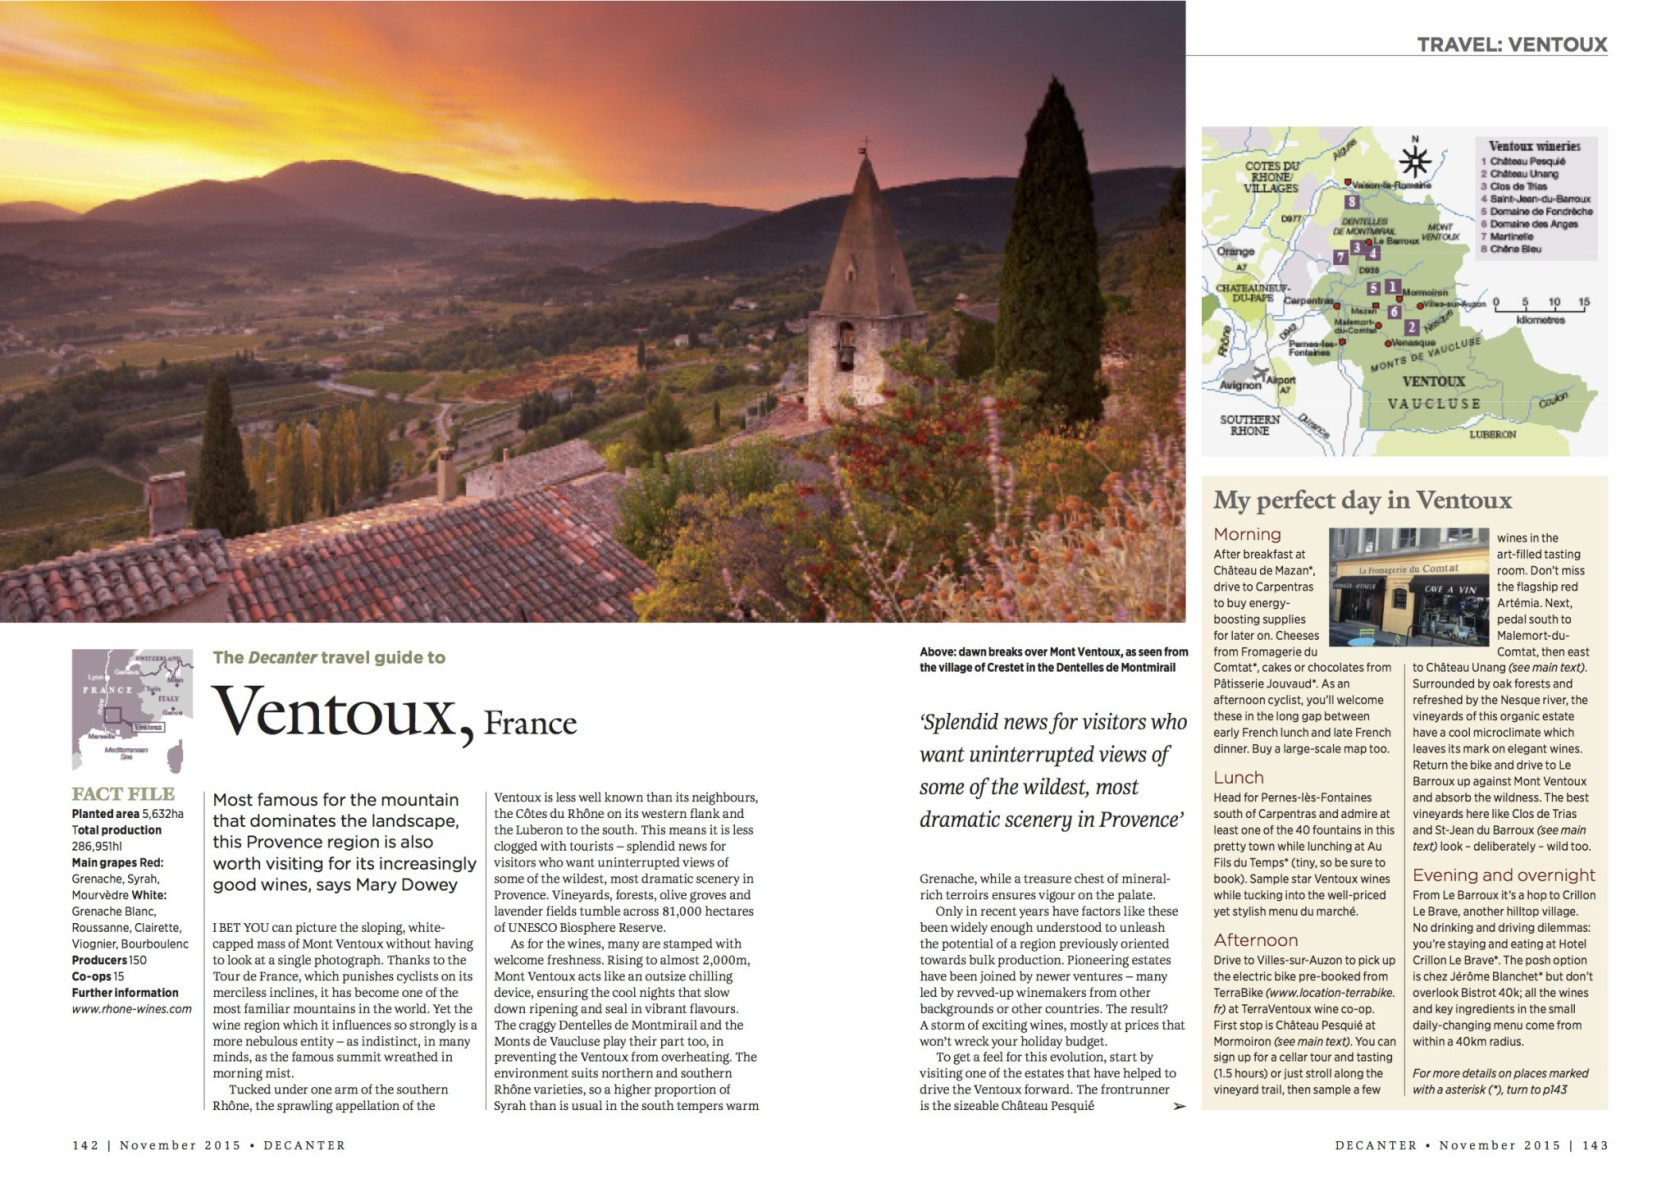 Ventoux travel